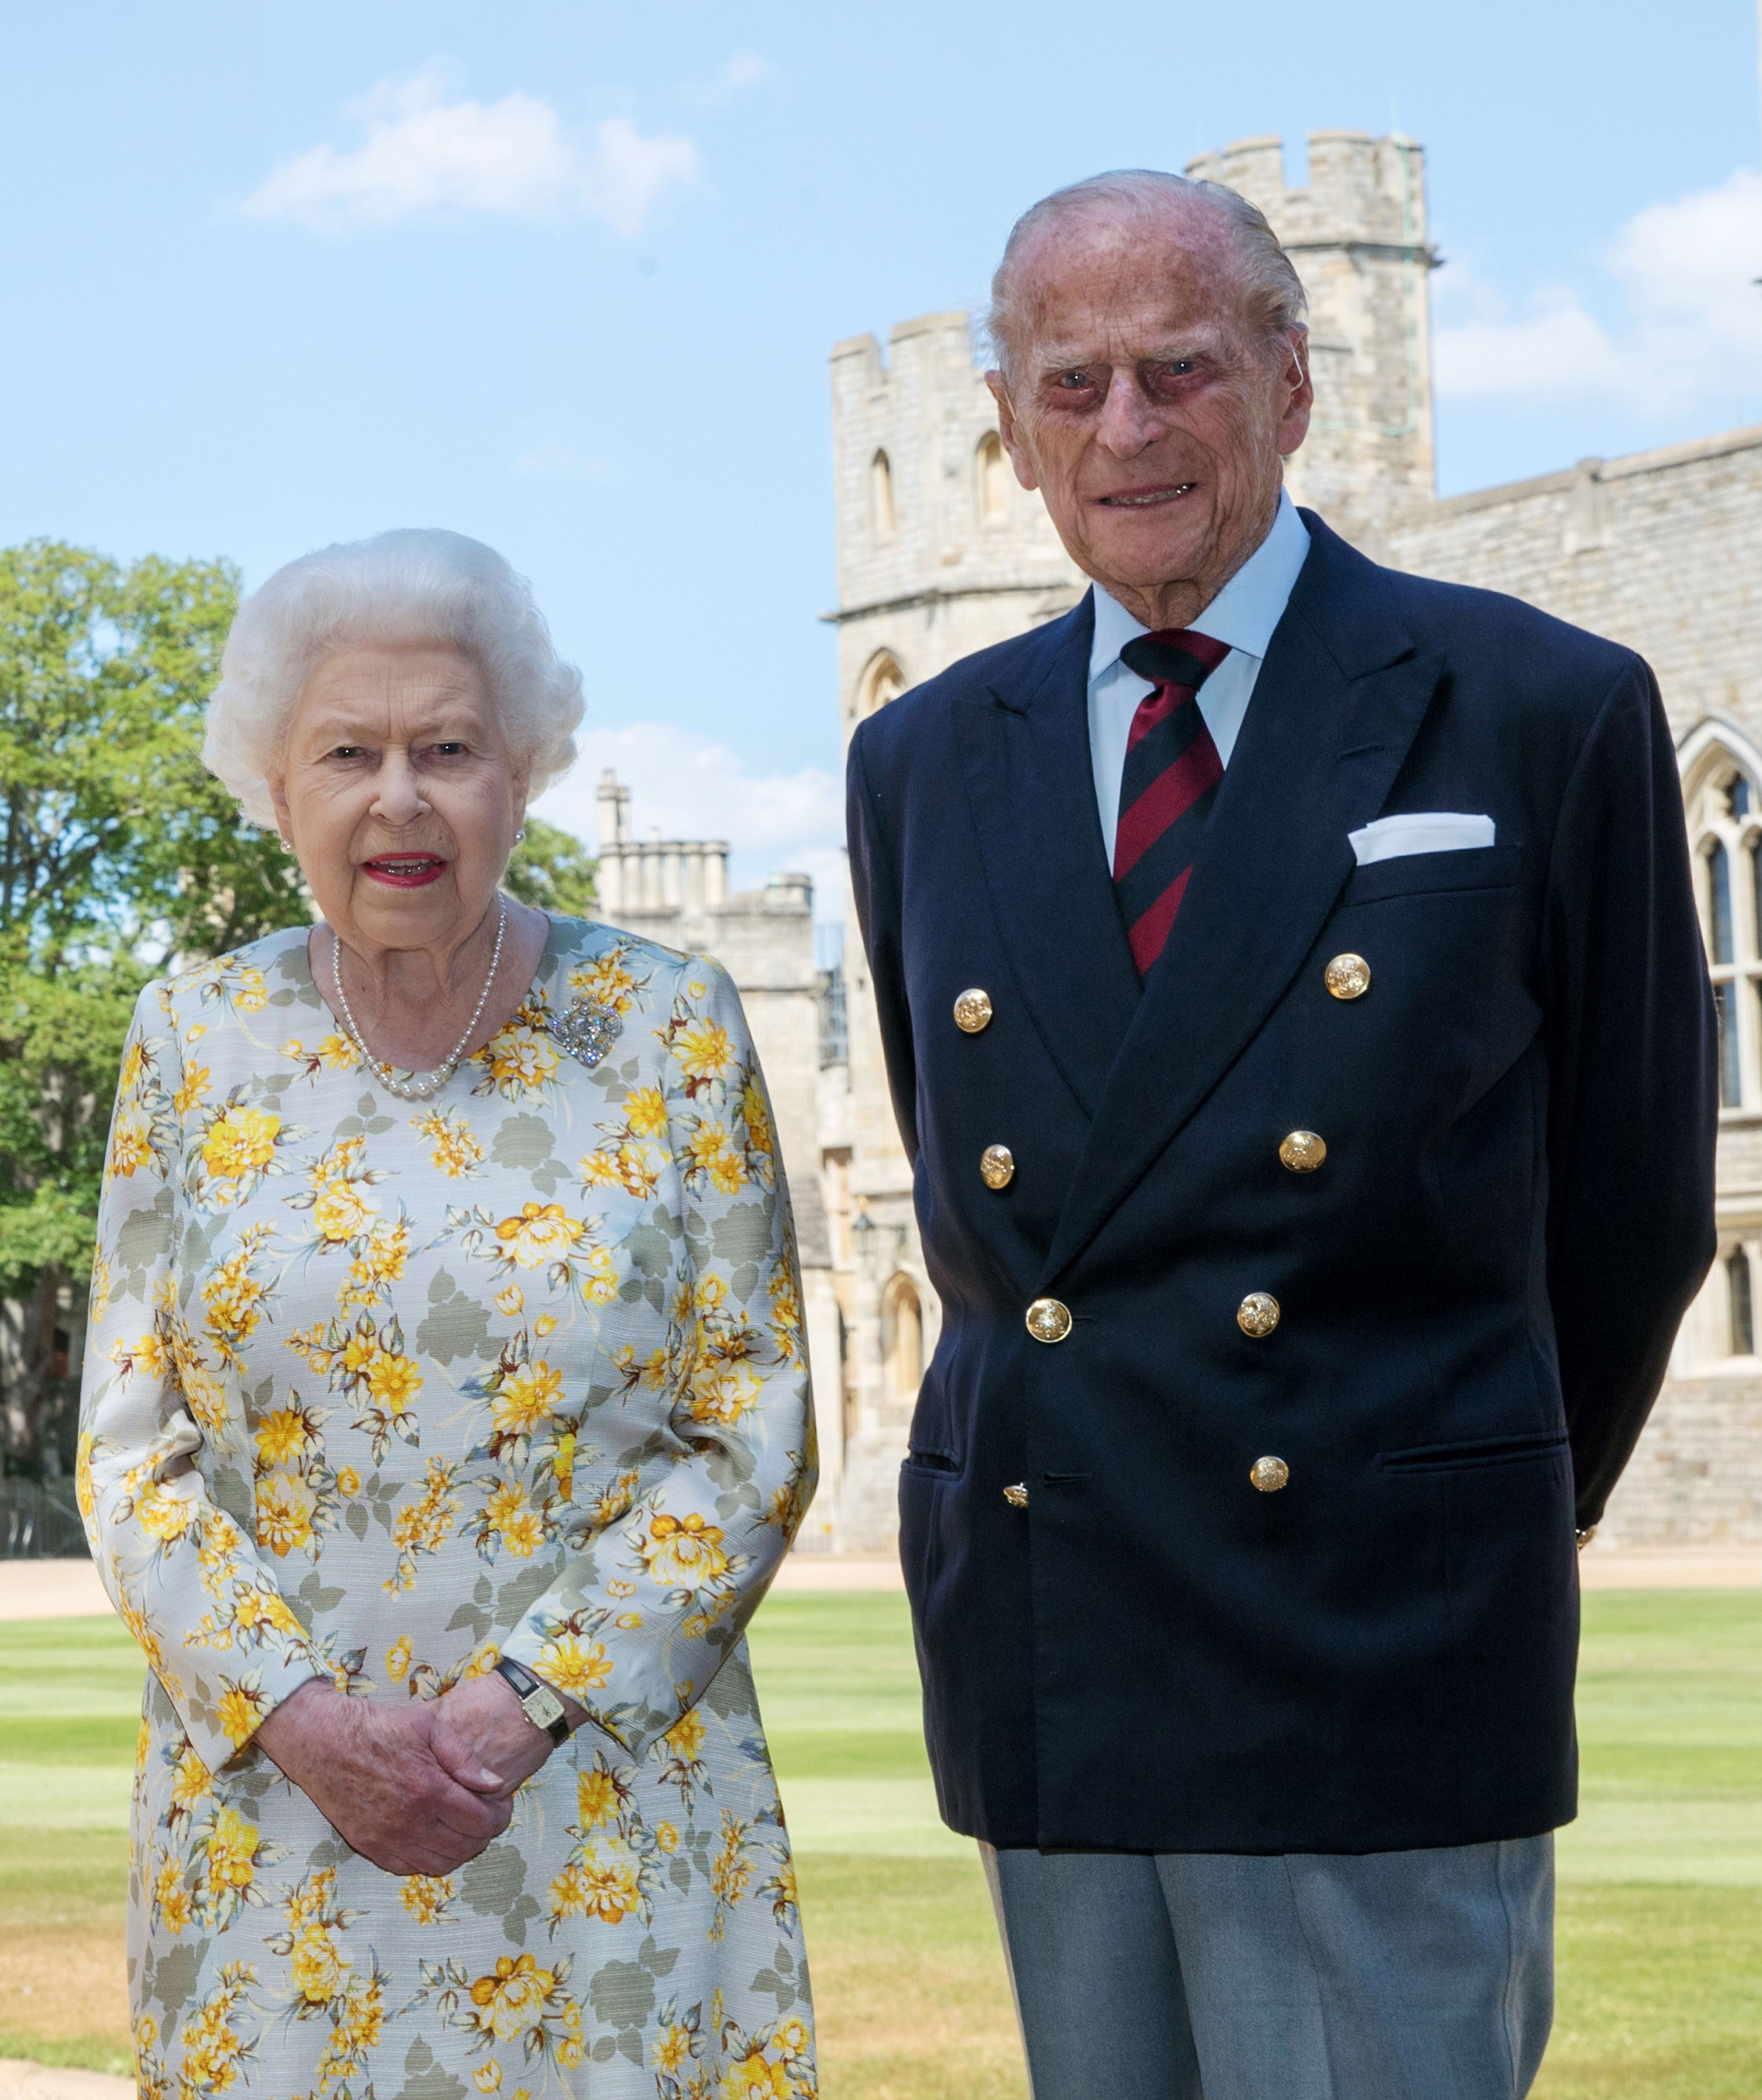 Queen Elizabth and Prince Philip in the quadrangle of Windsor Castle ahead of his 99th birthday. | Getty Images